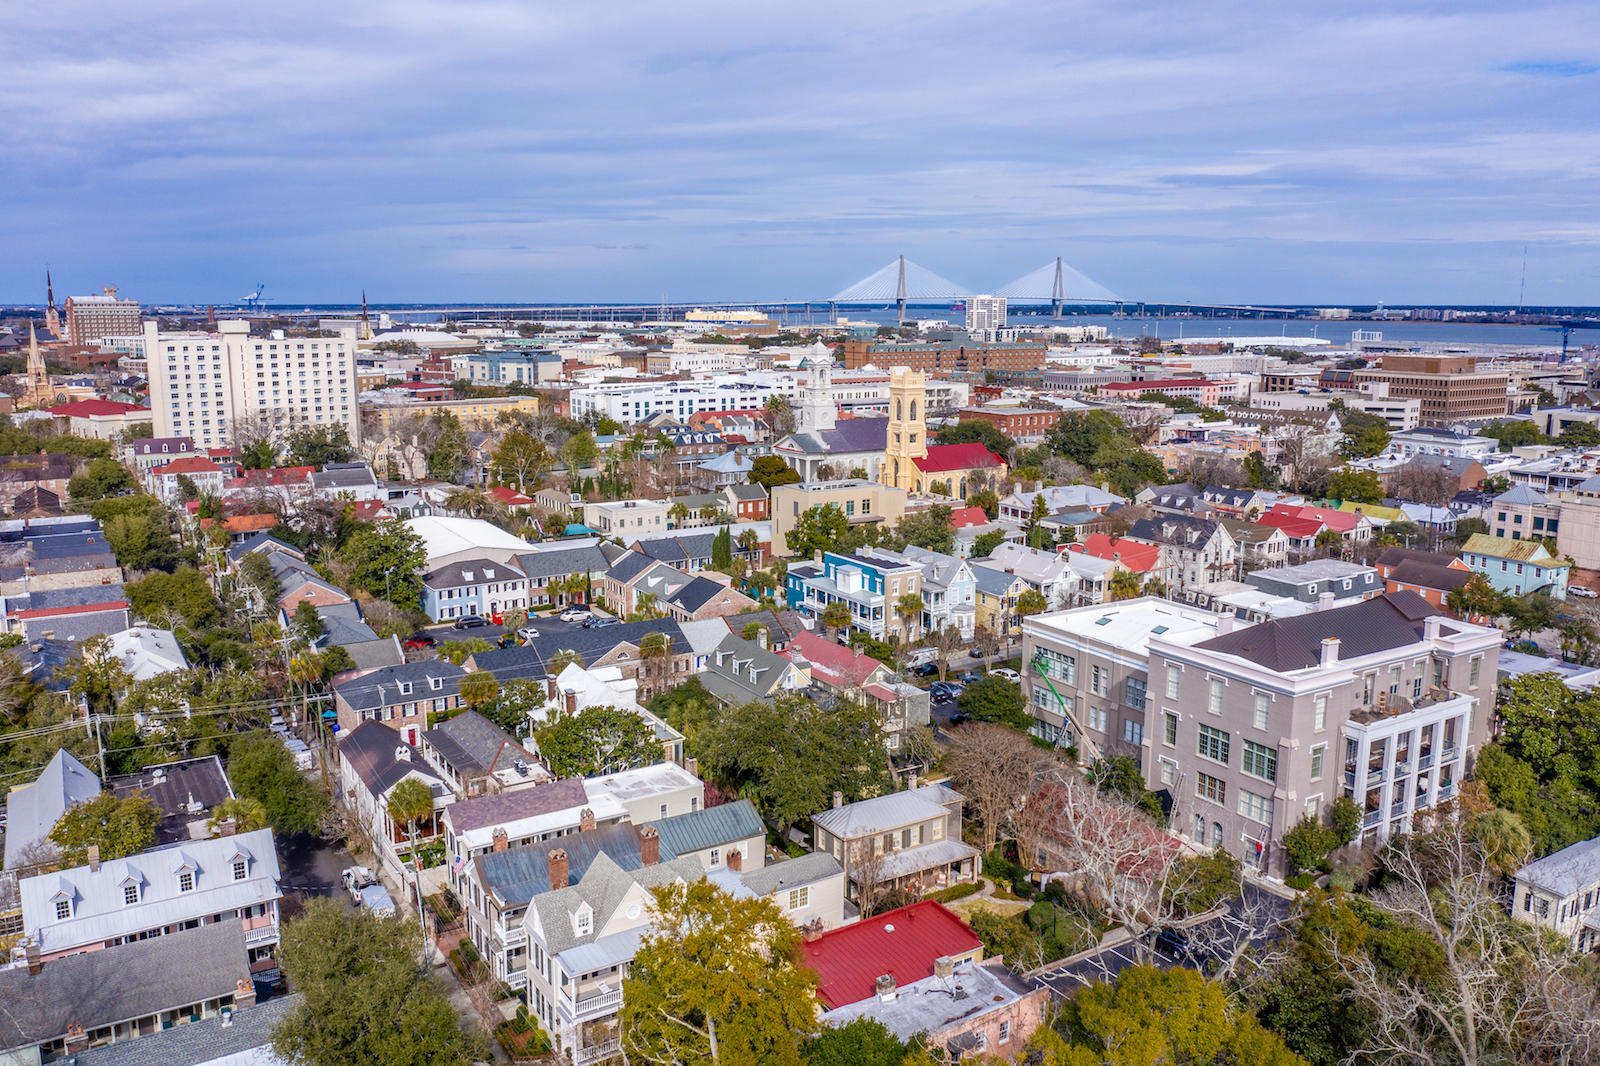 Crafts House Homes For Sale - 125 1/2 Queen, Charleston, SC - 4